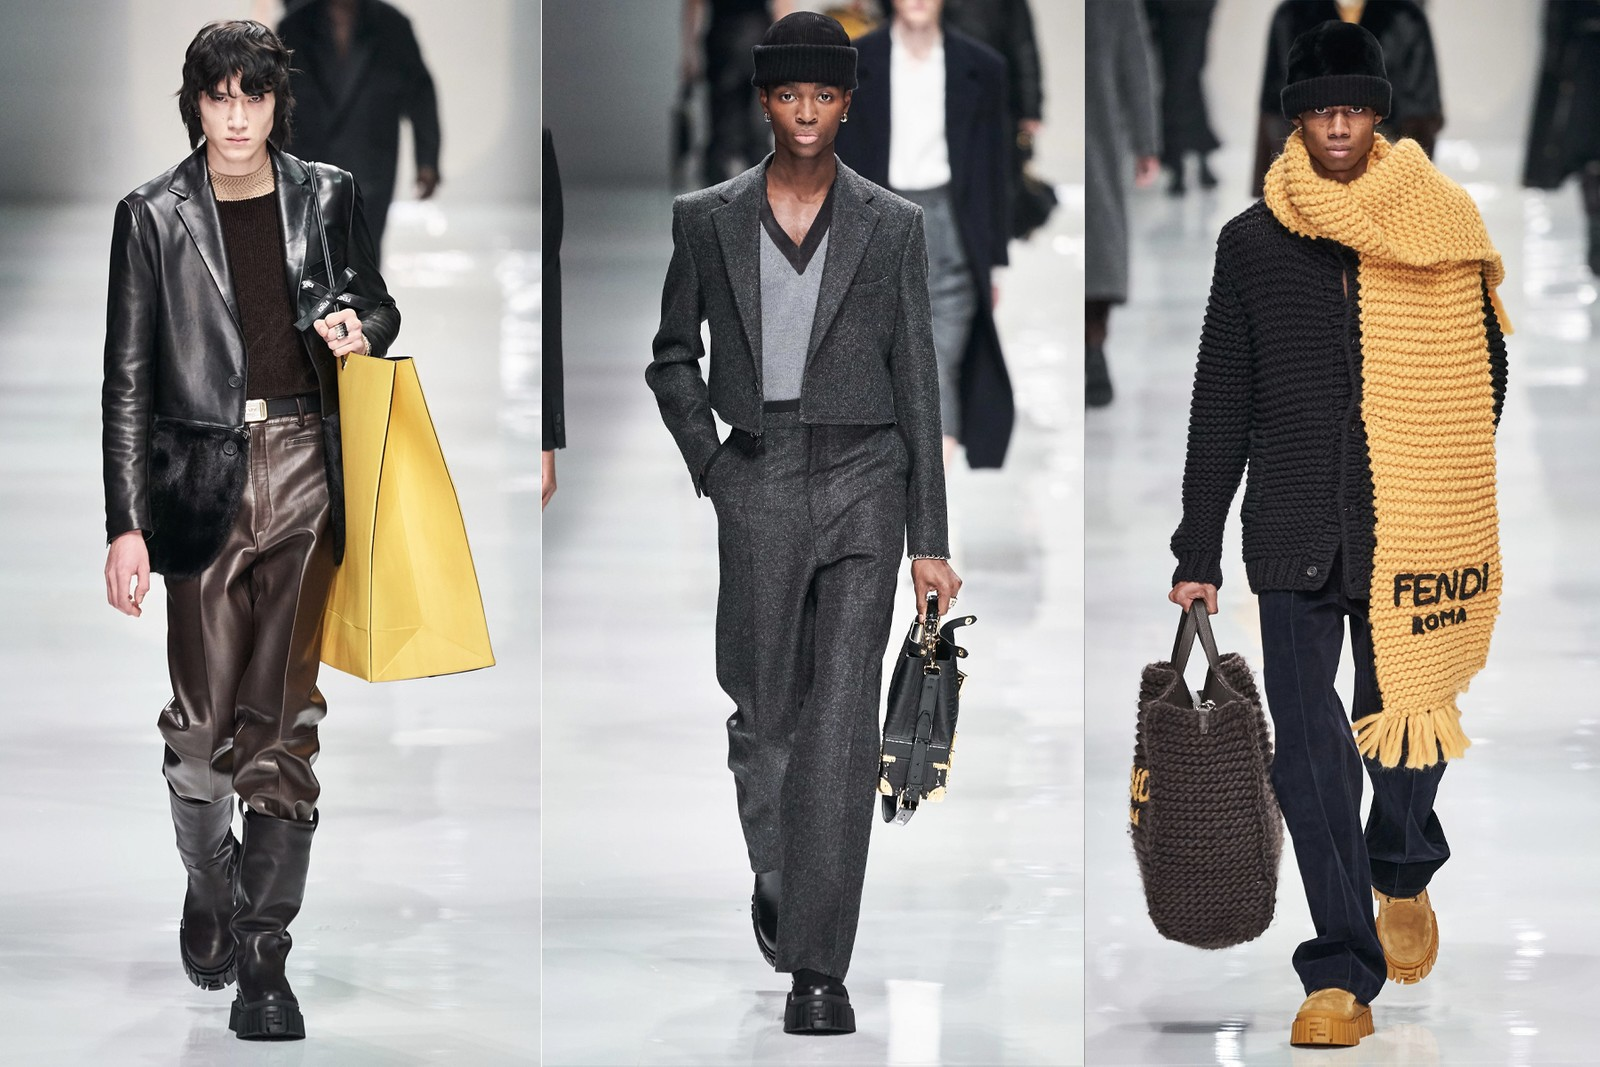 Milan Fashion Week Men's Fall/Winter 2020 Shows Prada Marni Fendi Gucci